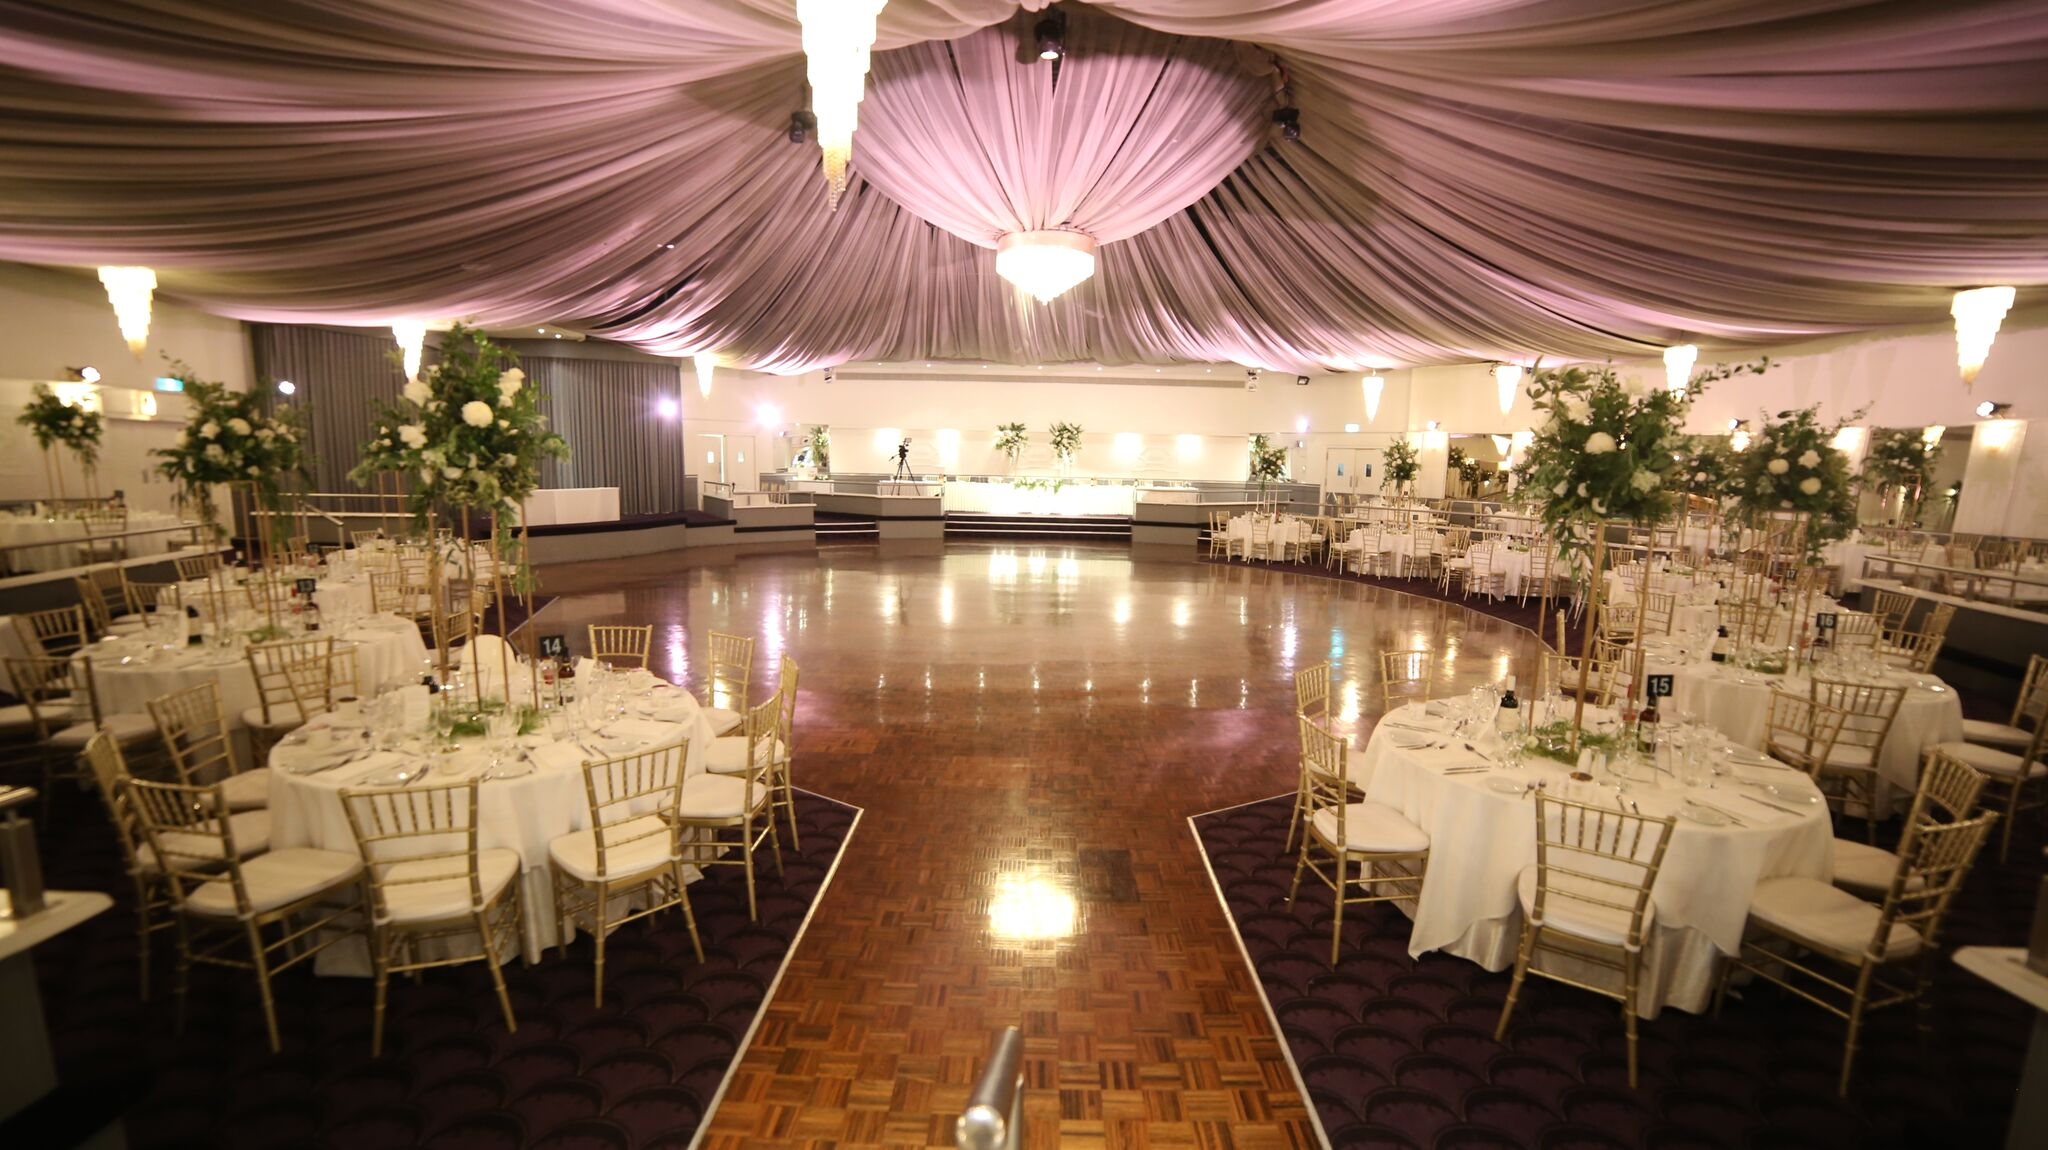 ballroom with canopy and tables for guests